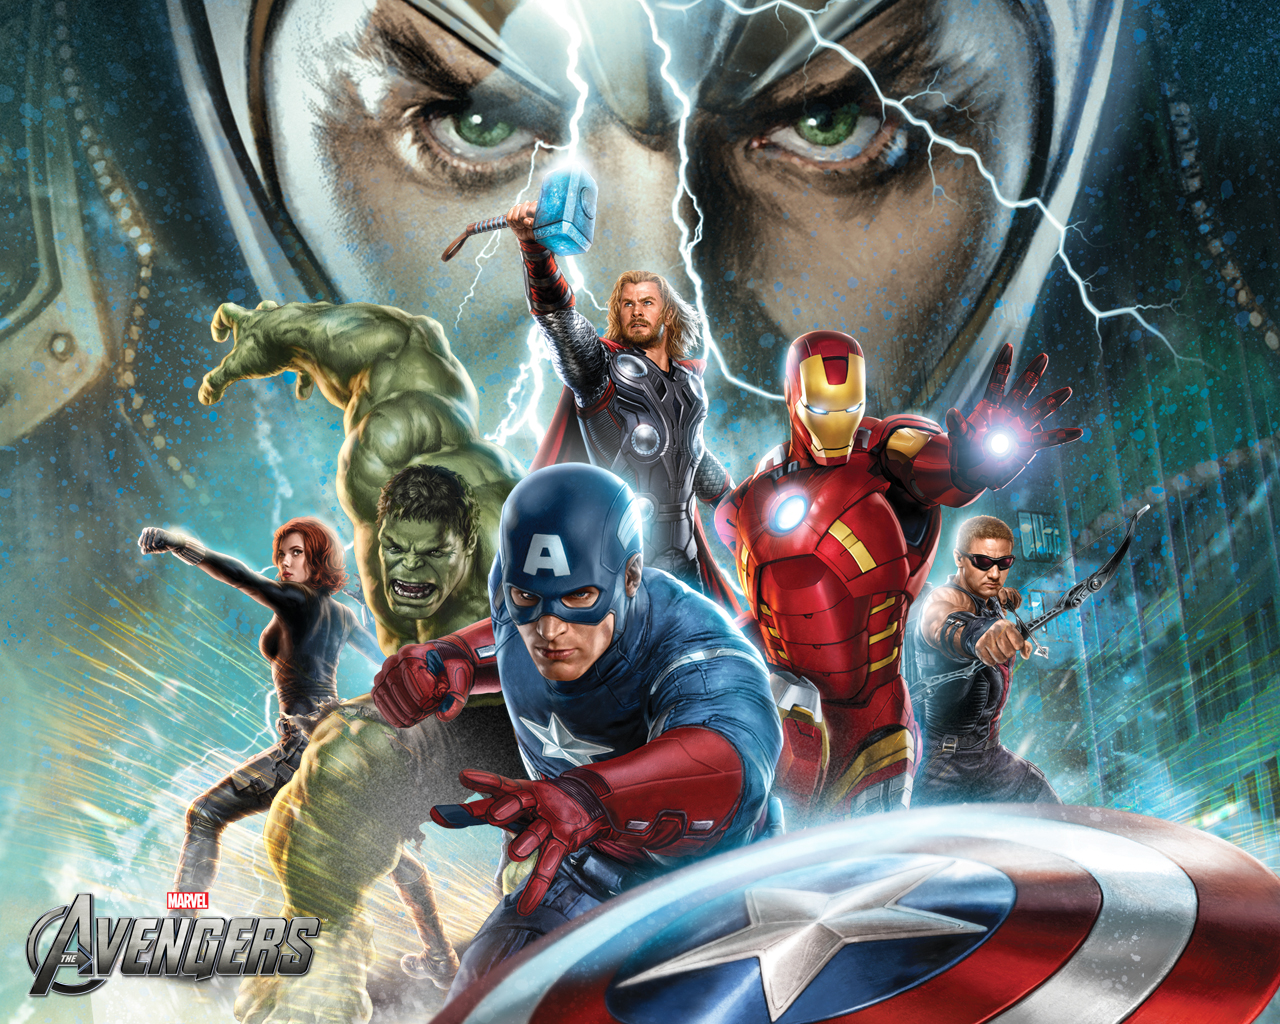 http://2.bp.blogspot.com/-hzLlWGOYdOw/T7_3sbNoVNI/AAAAAAAAAX4/SjPMQacMqFs/s1600/2280835-avengers_background_12.jpeg